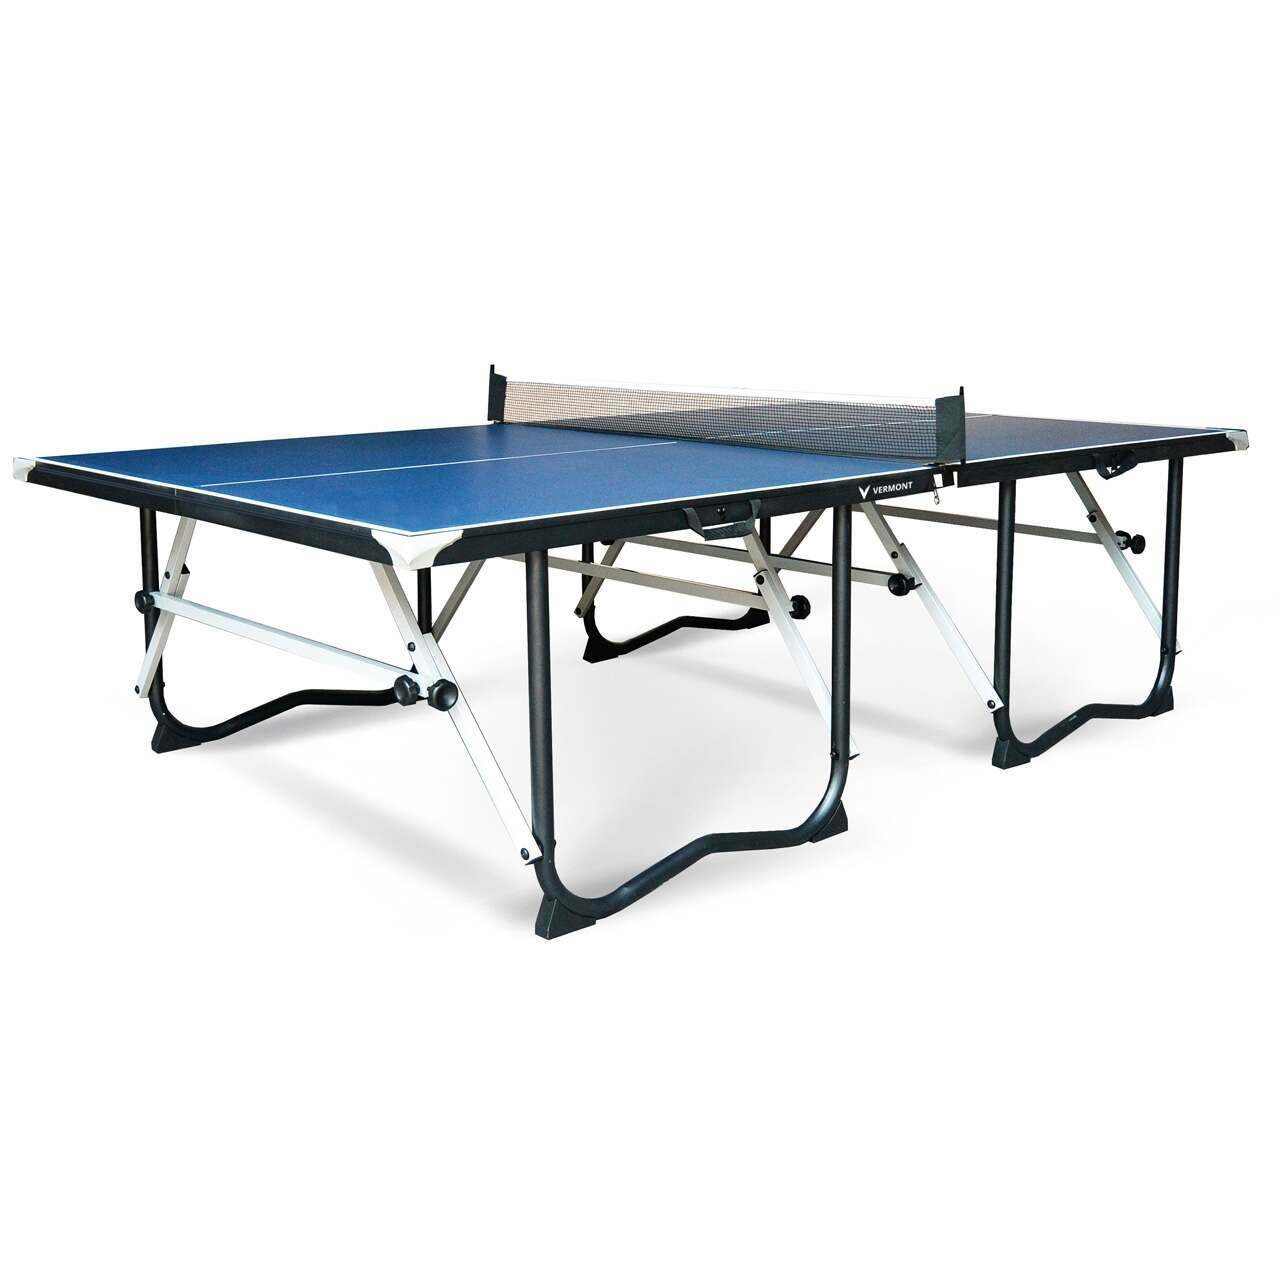 Vermont Foldaway Ping Pong Table